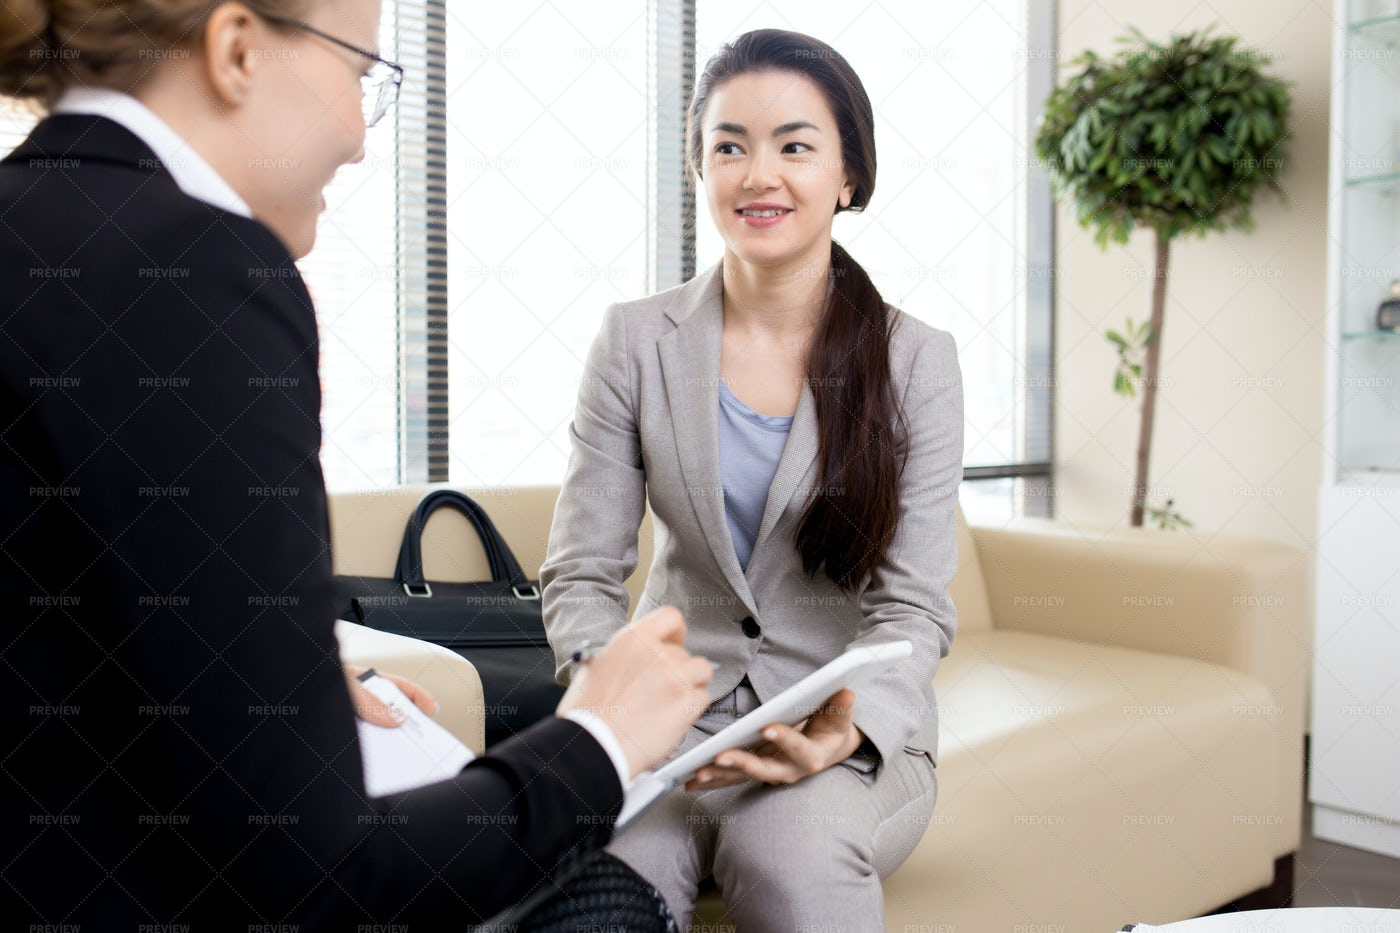 Productive Discussion With Pretty...: Stock Photos